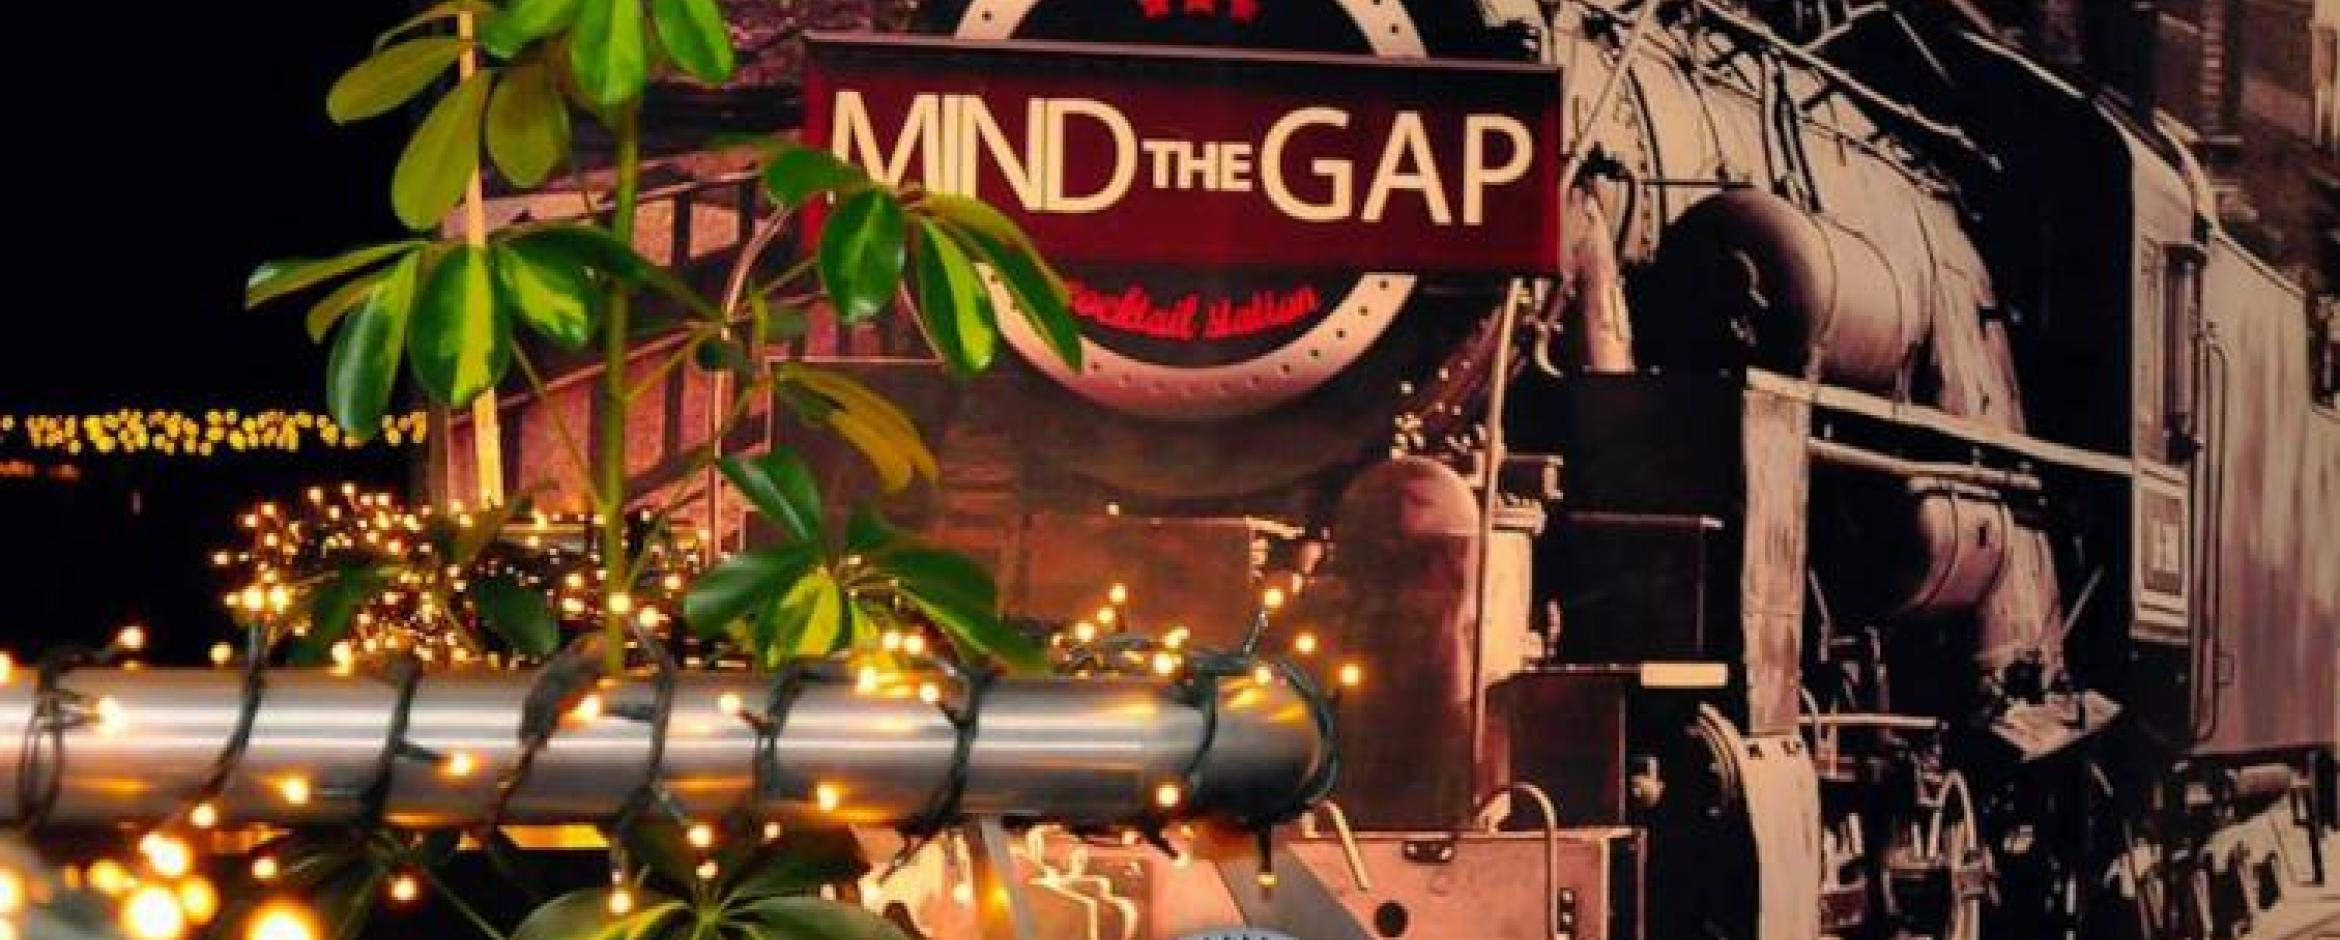 Mind The Gap – Cocktail & Resto Station, Κολωνάκι